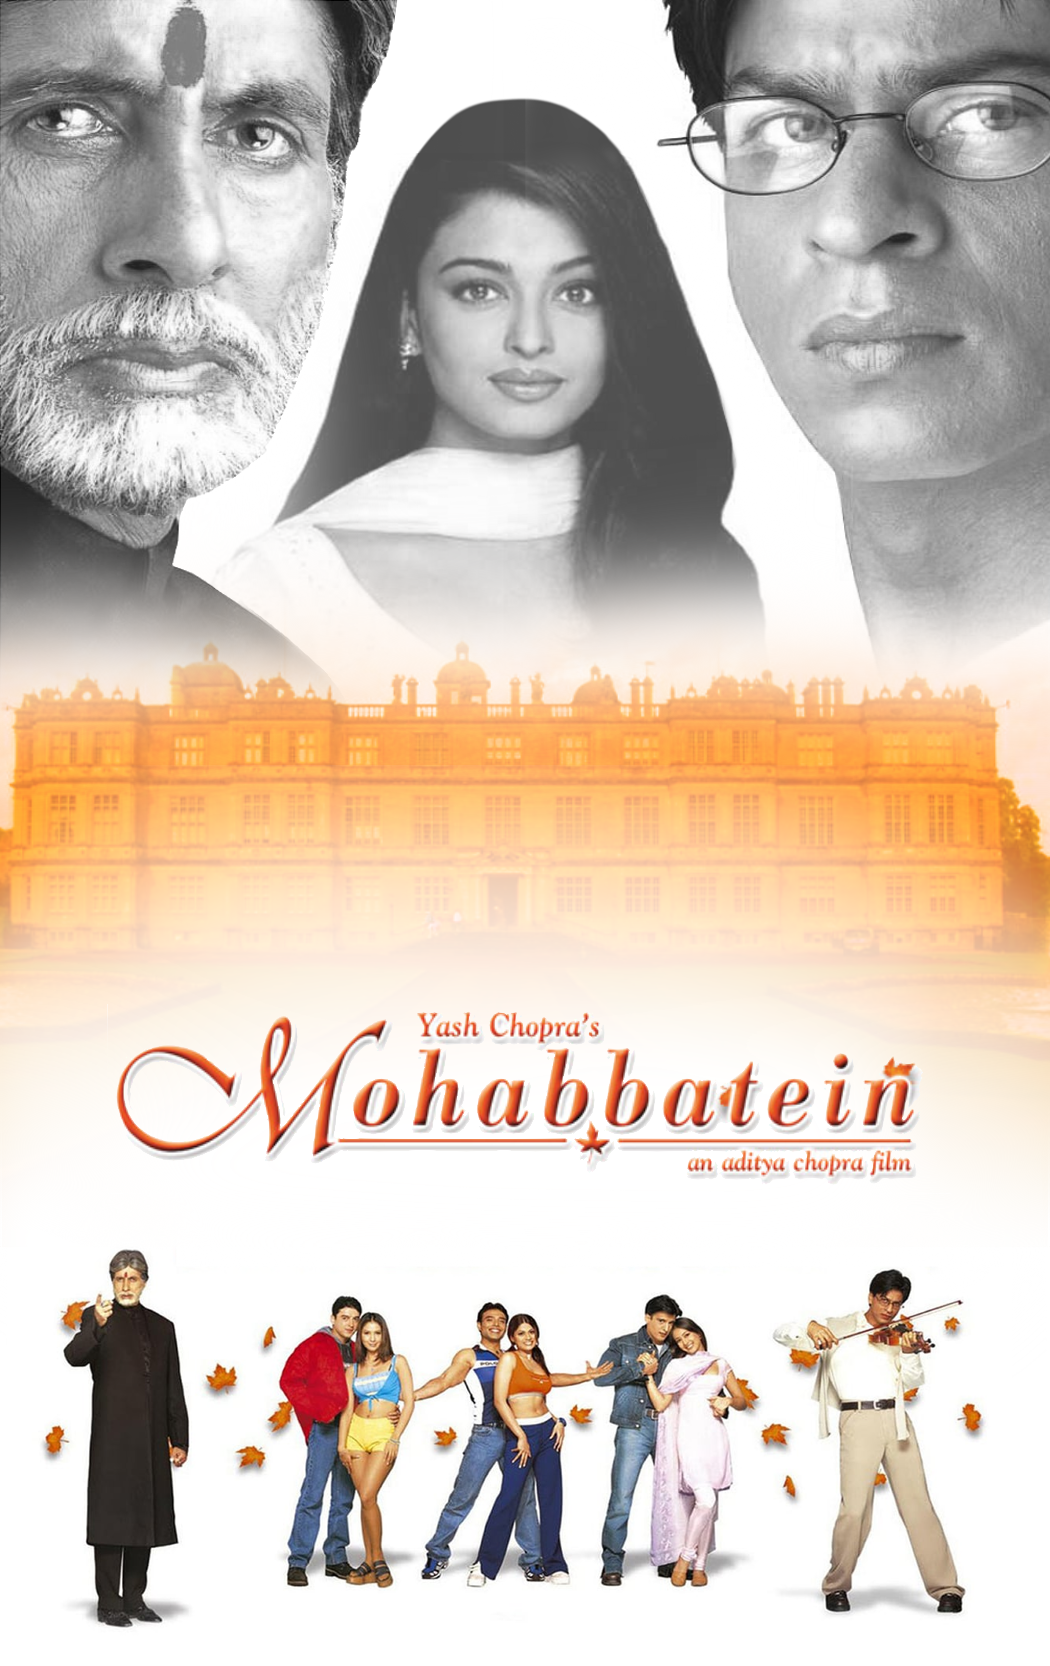 18 Adult Movies Torrent download mohabbatein movie torrent podcast